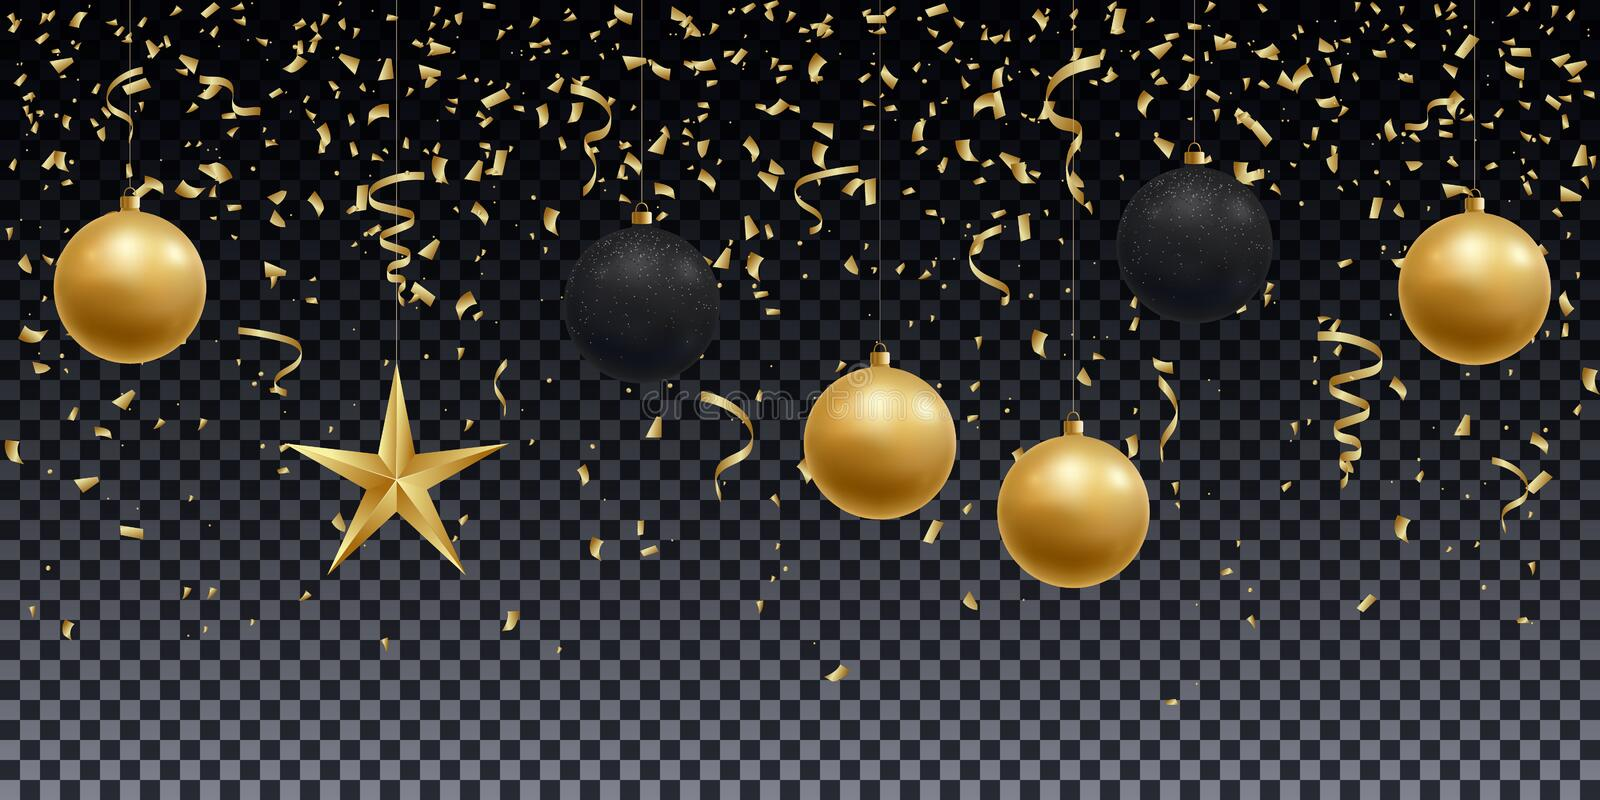 Realistic shiny gold and black balls, star and confetti on a transparent background. royalty free illustration